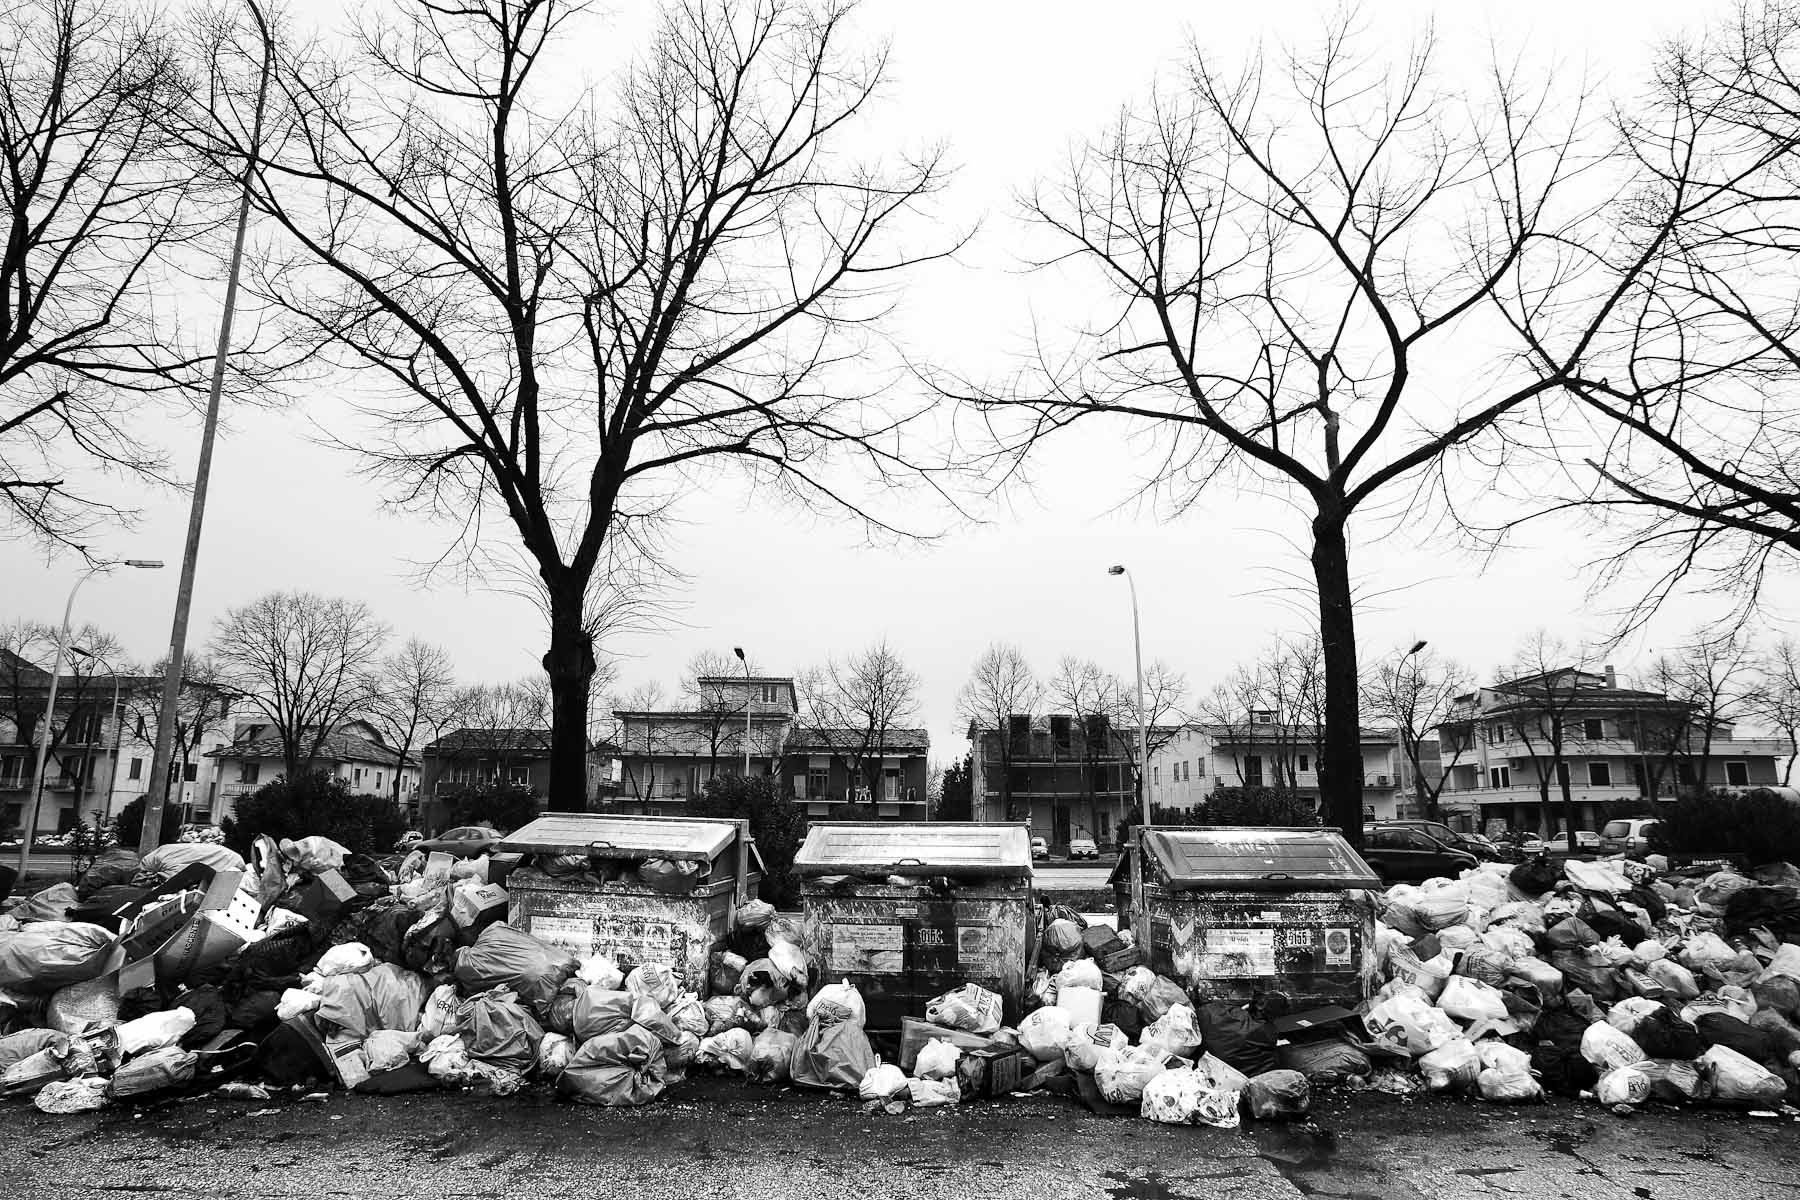 Garbage piles up along a residential street in Caserta on the outskirts of Naples, Italy on February 21, 2008.